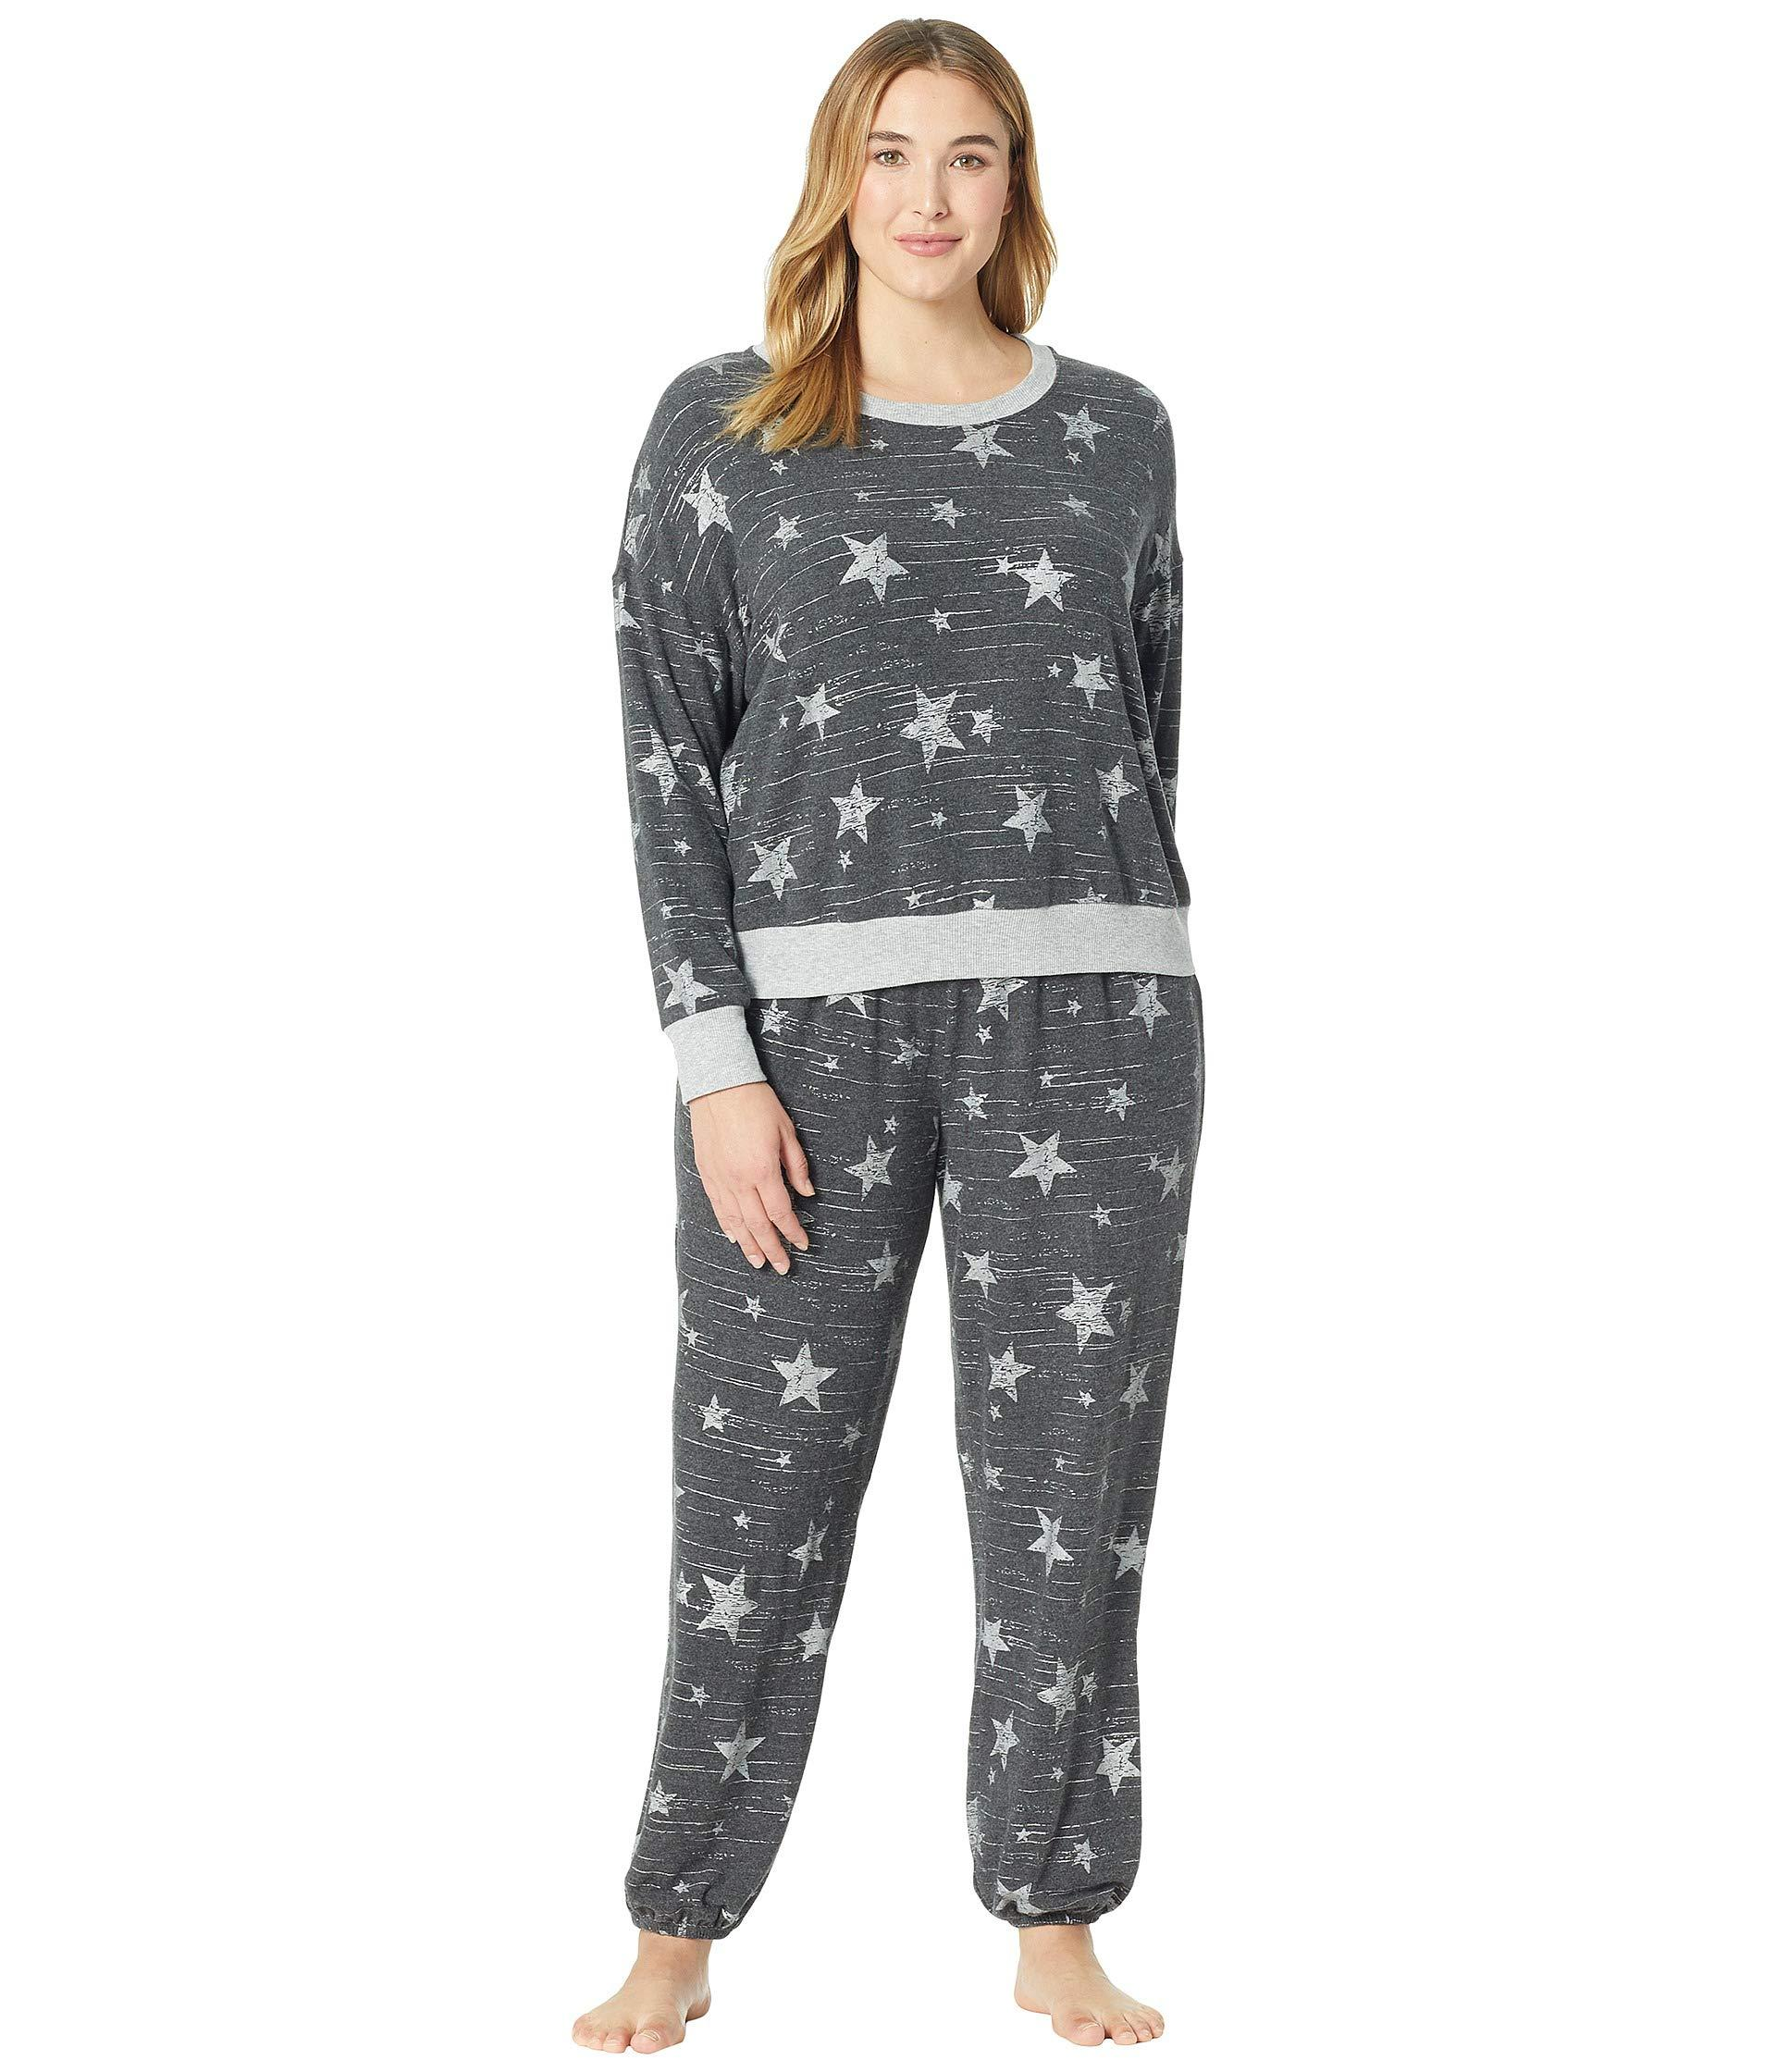 b44aff034 Splendid Plus Size Brushed Jersey Long Sleeve Pj Set in Gray - Lyst